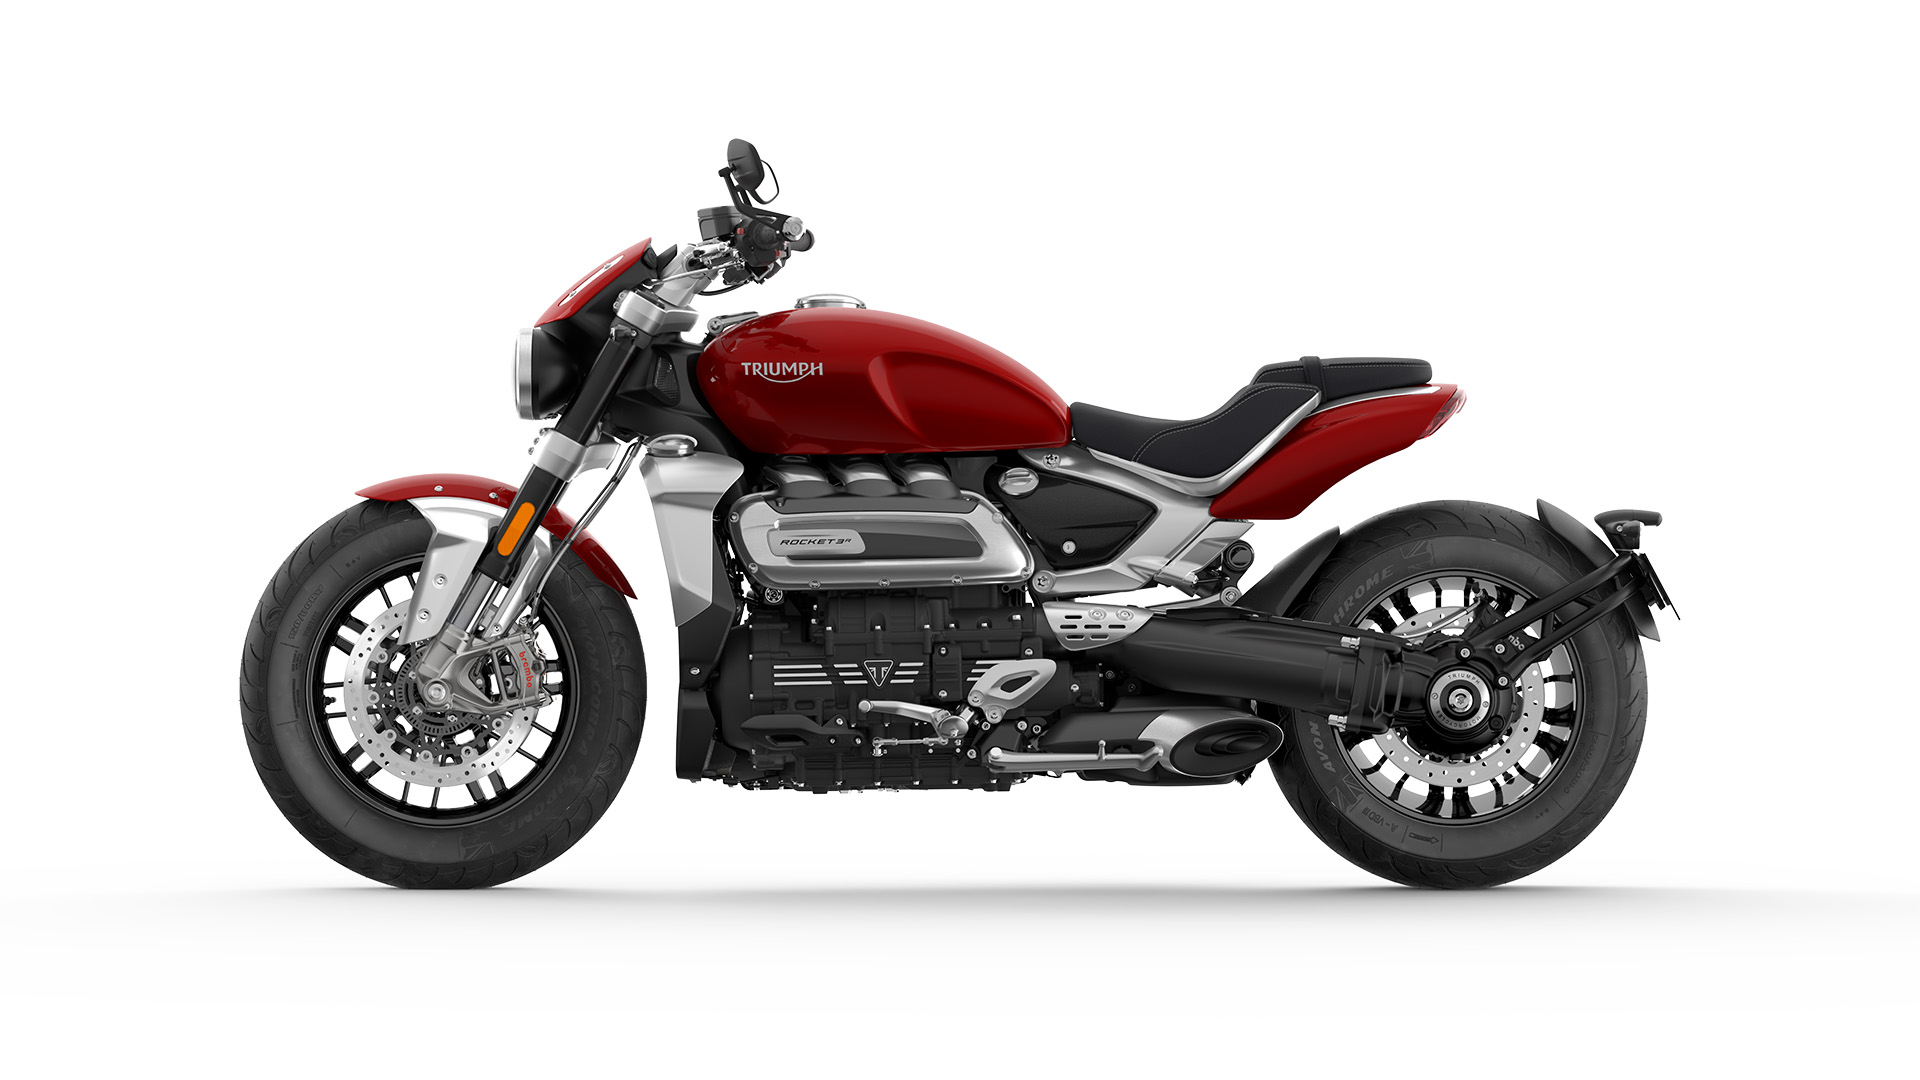 CGI Side view of the new Triumph Rocket 3 R